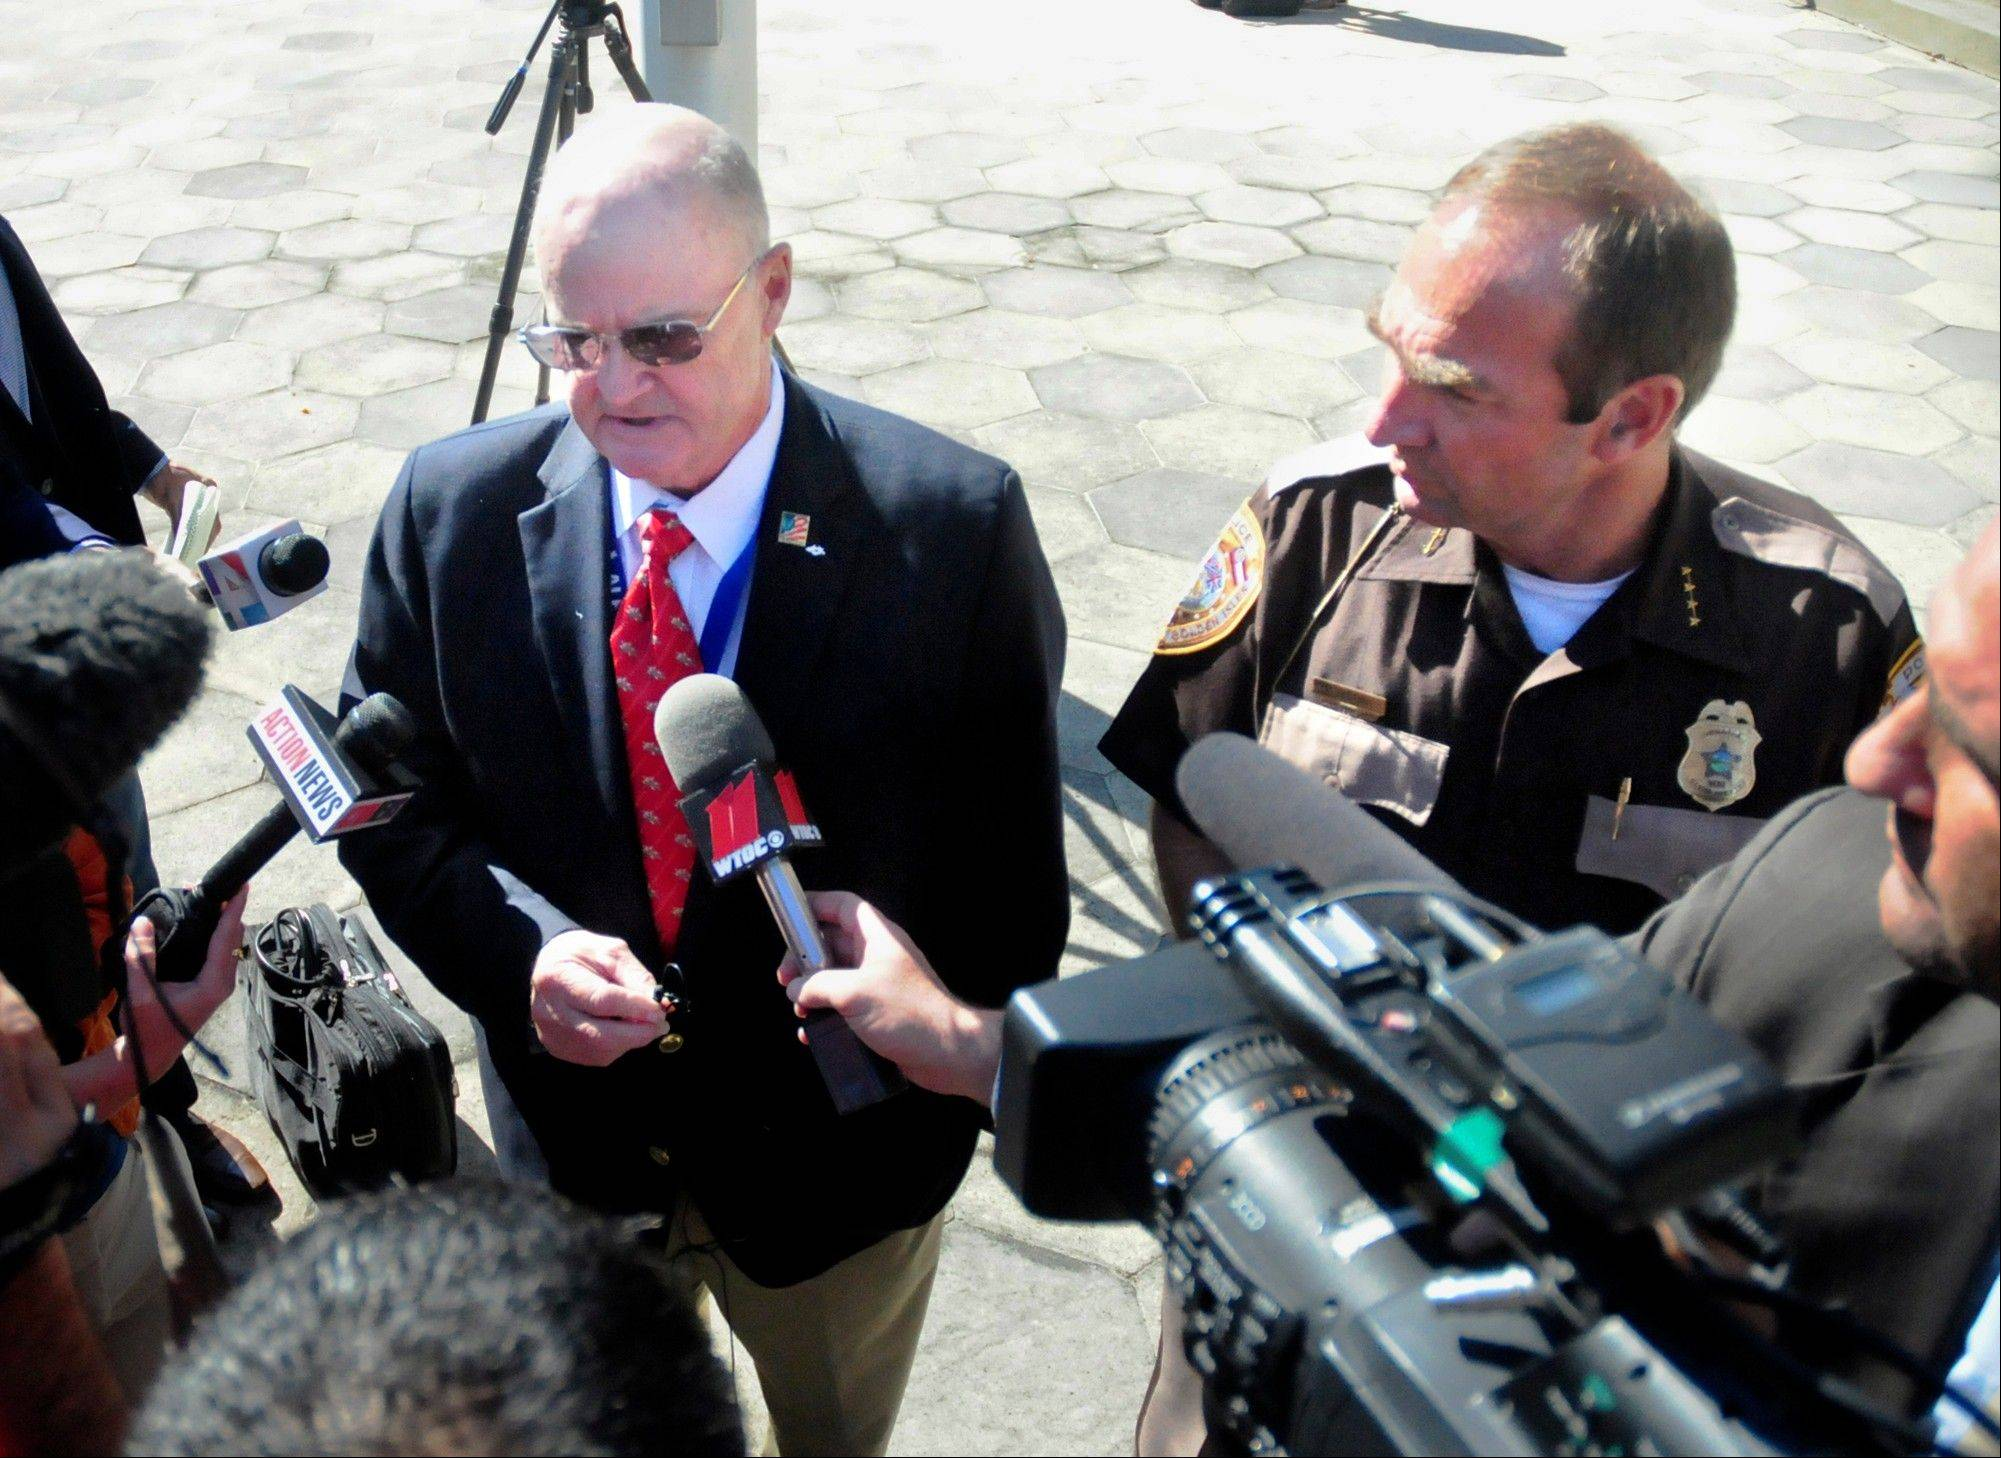 Special Assistant District Attorney John B. Johnson, left, and Glynn County Police Chief Matt Doering meet with members of the press Friday in front of the Glynn County Courthouse in Brunswick, Ga.